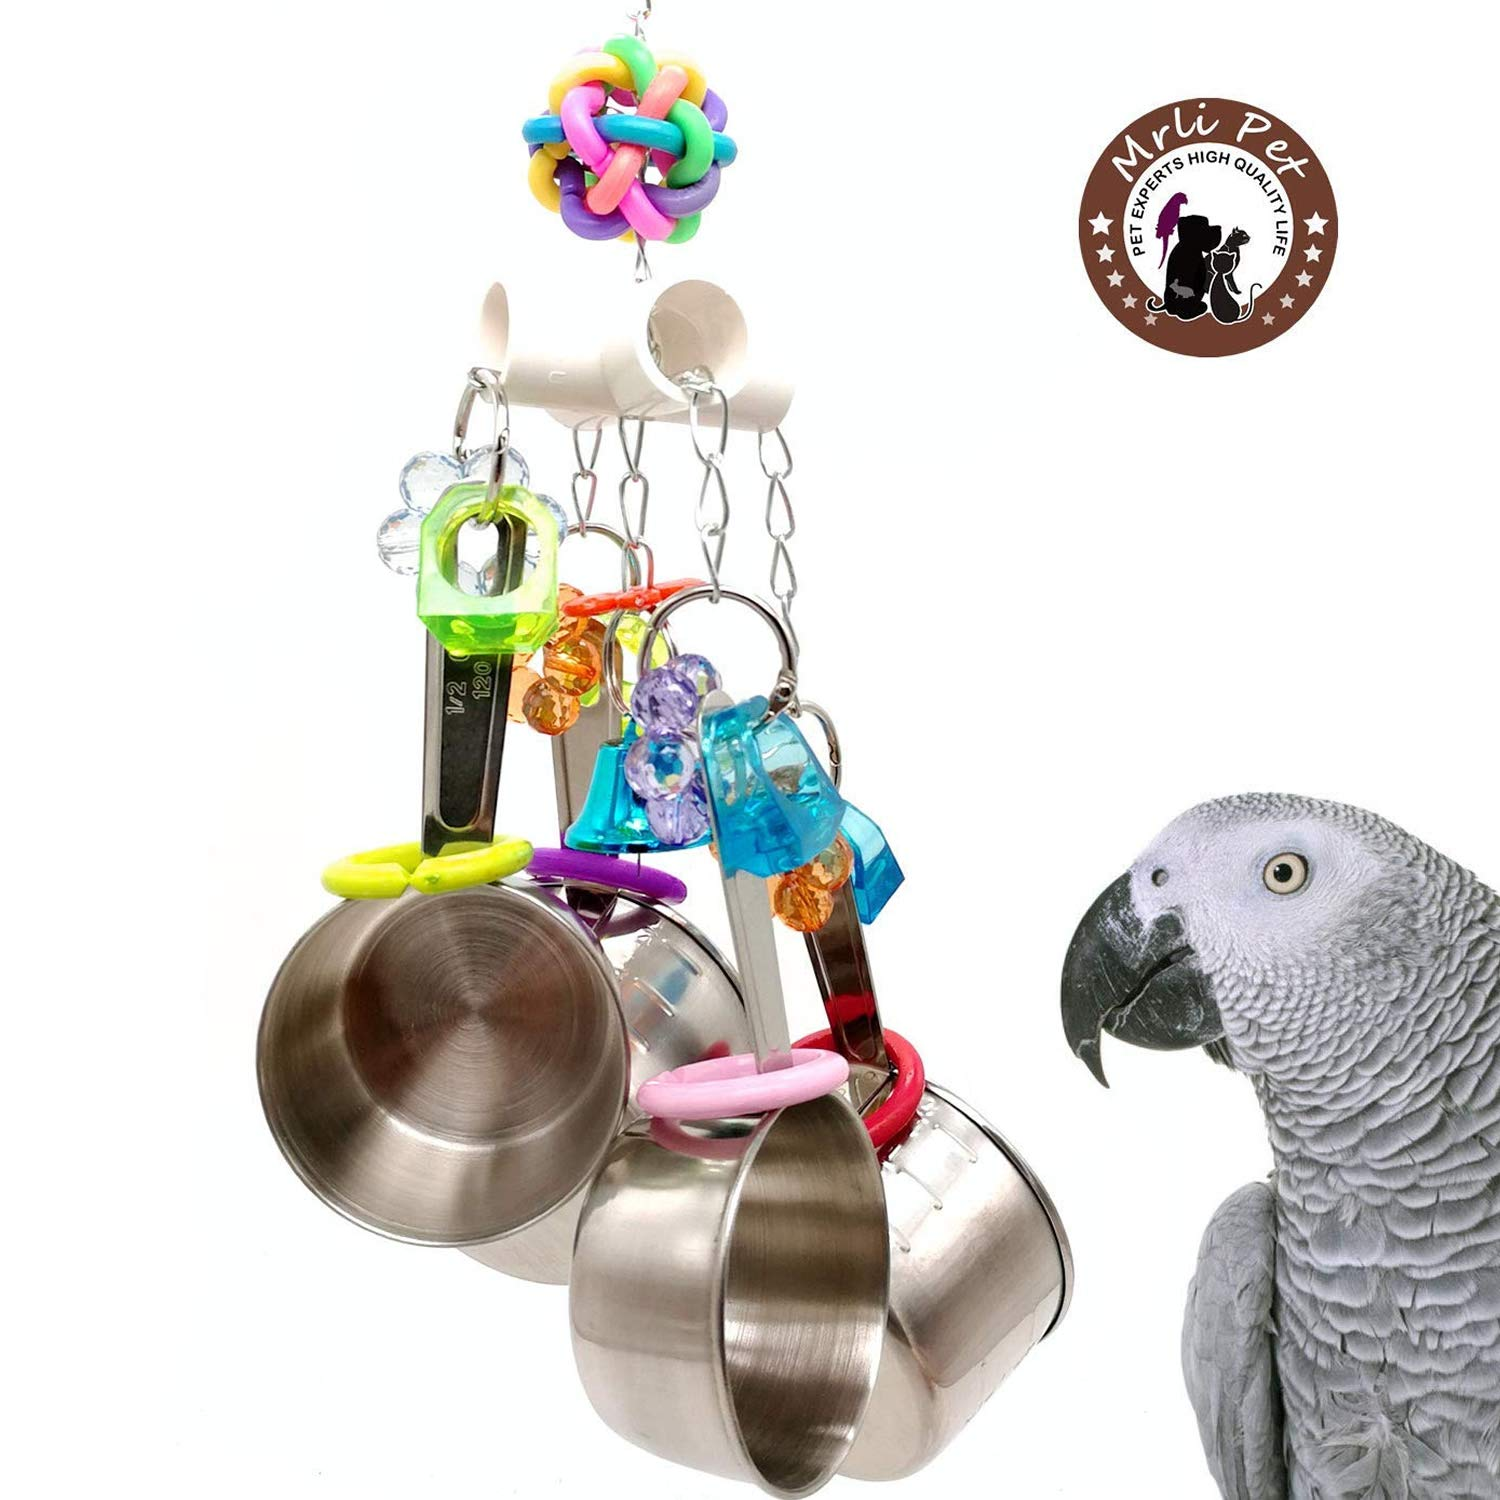 Mrli Pet Clacker Bird Toy Parrot Cage Toys Parrot Bell Toy Bird Chew Toys Conure Cockatoo Macaw African Grey Amazon Budgie Parakeet Cockatiel Lovebird Finch